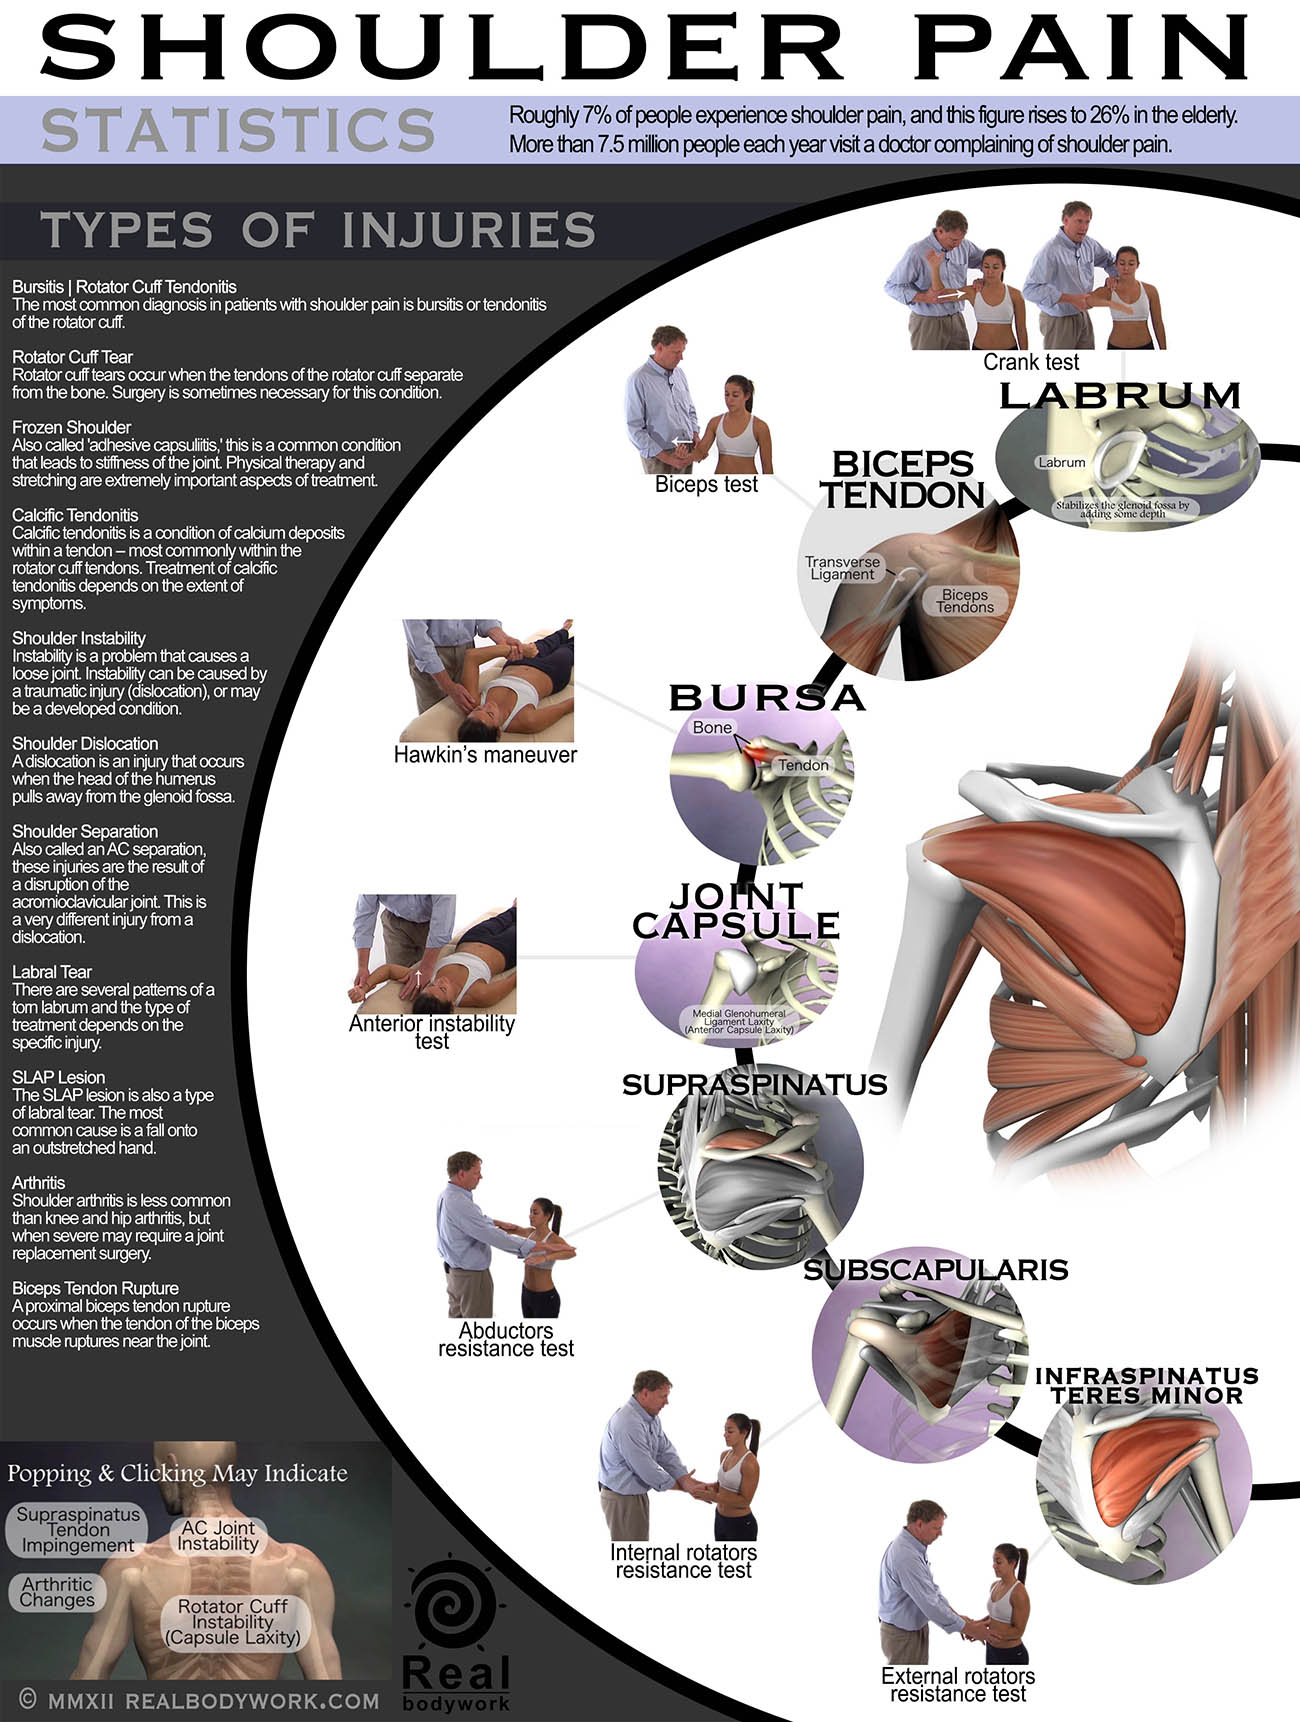 best chair after neck surgery patio repair fabric shoulder pain poster real bodywork